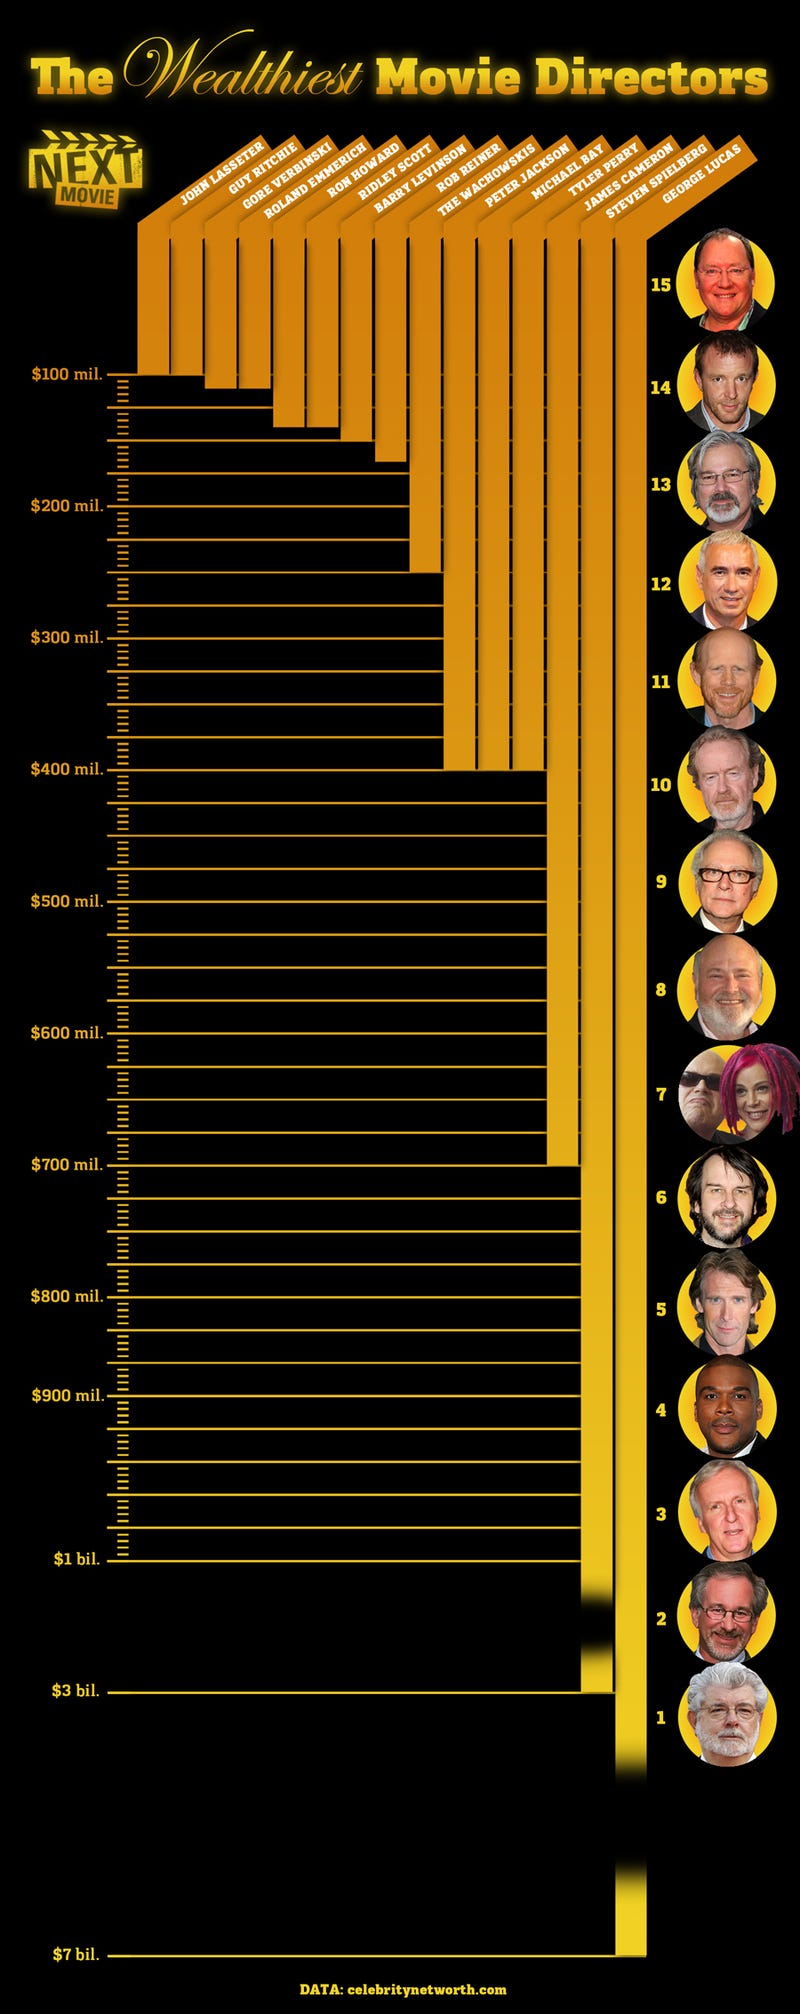 This List Of The Richest Movie Directors Seems To Be Missing Something